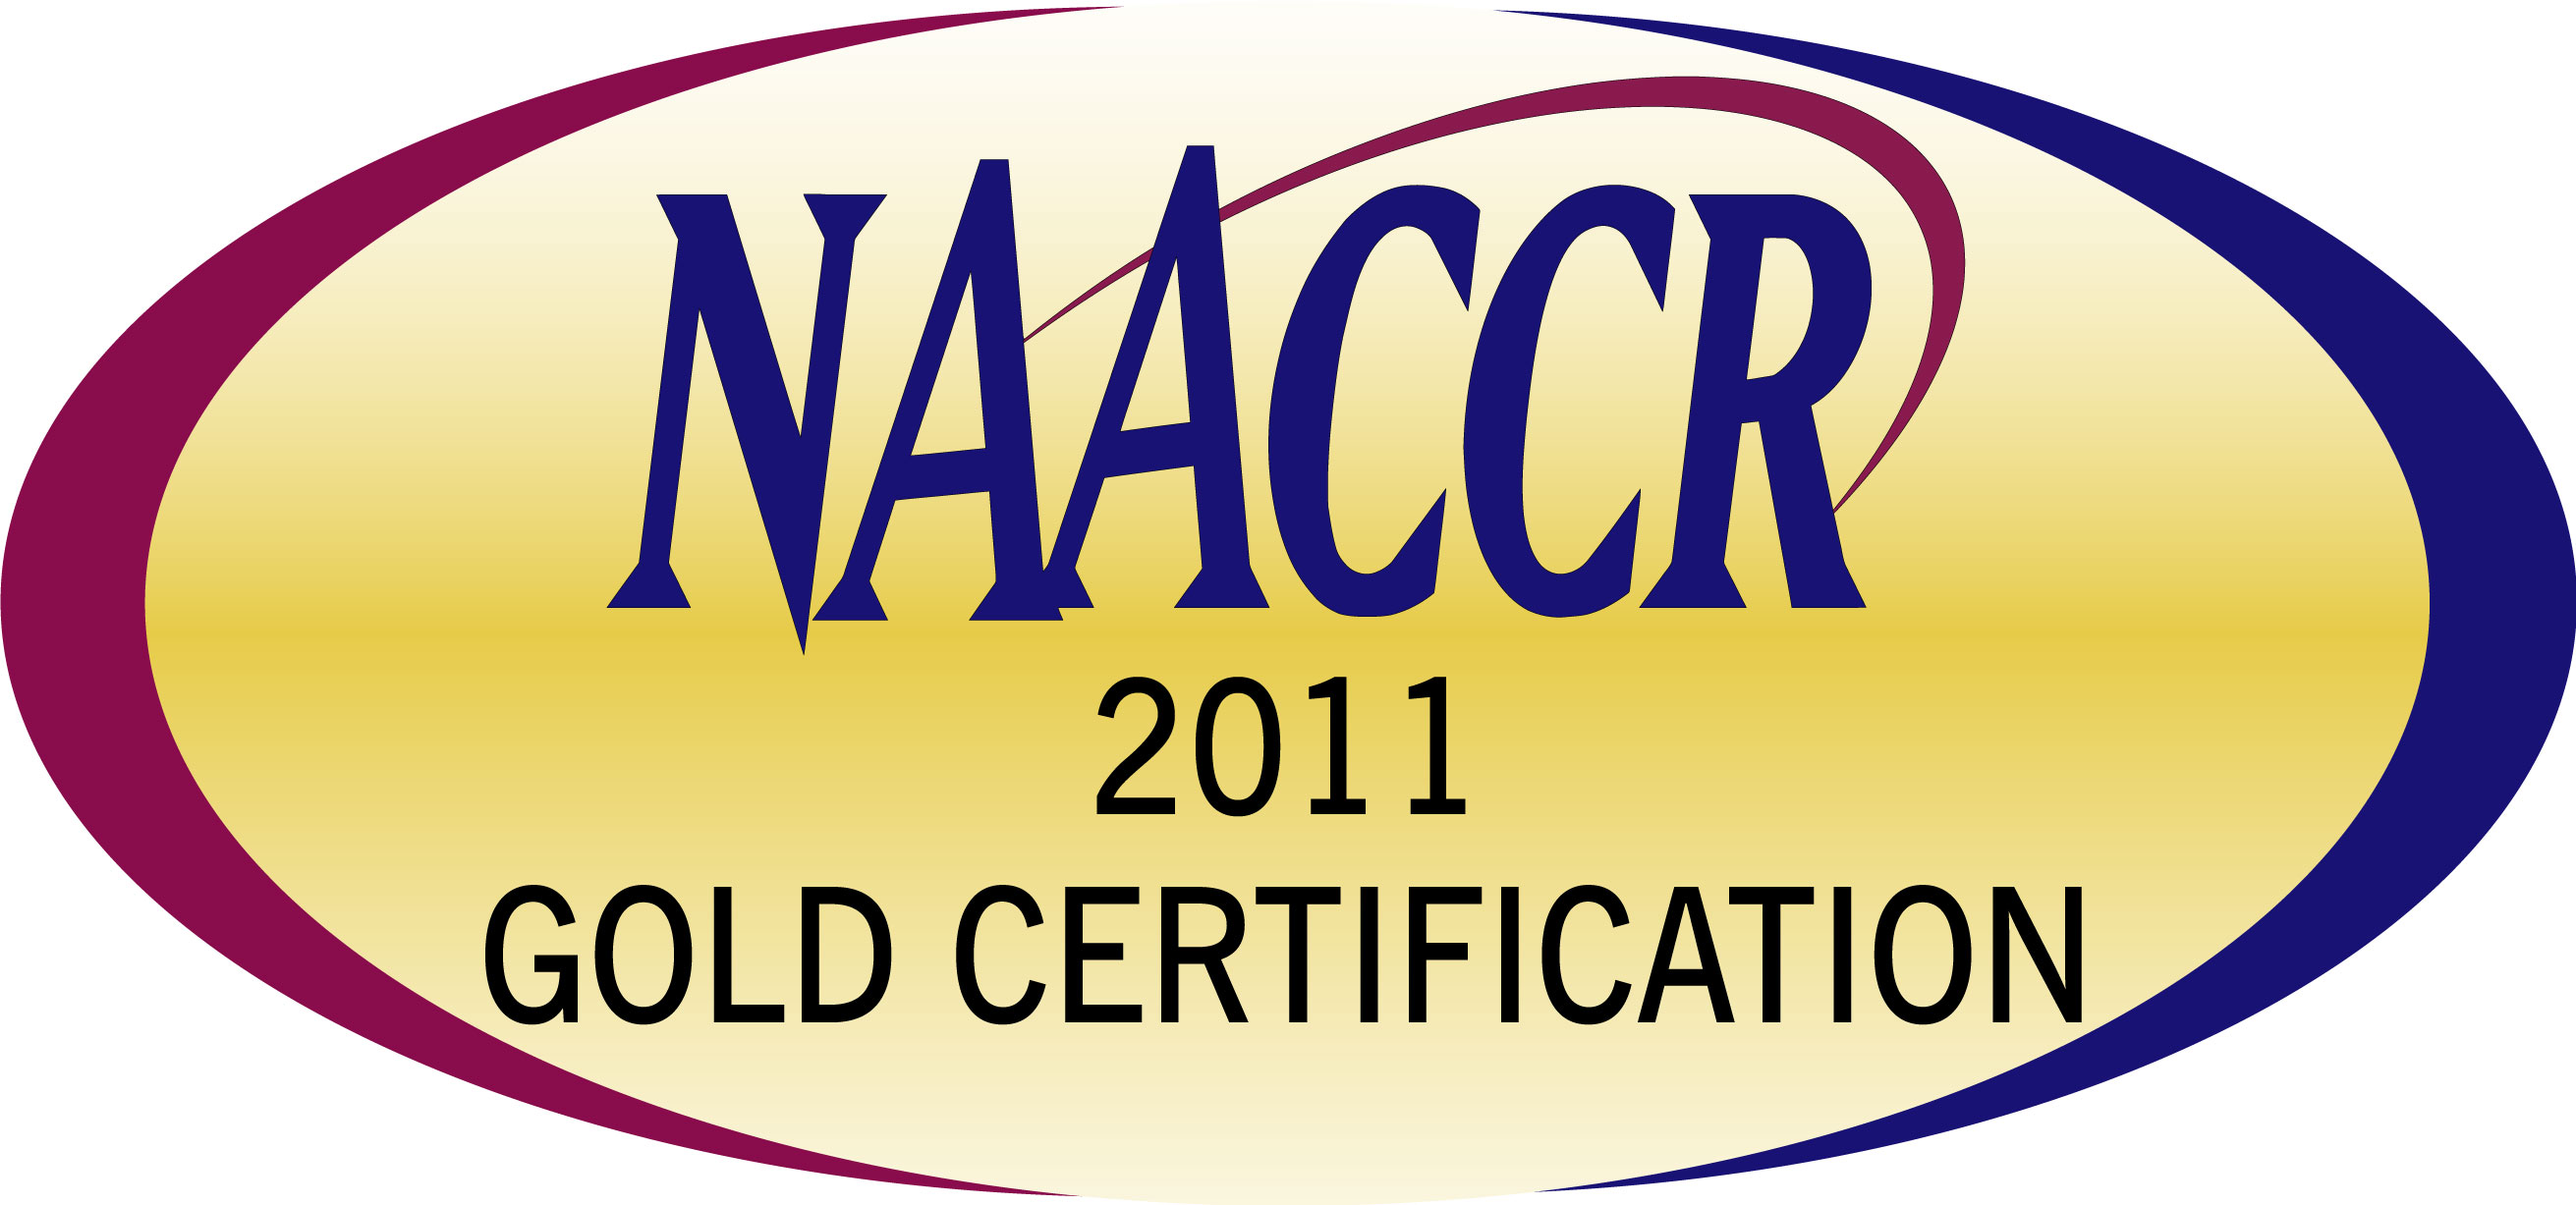 NAACCR2011GoldCertification-Huge.jpg